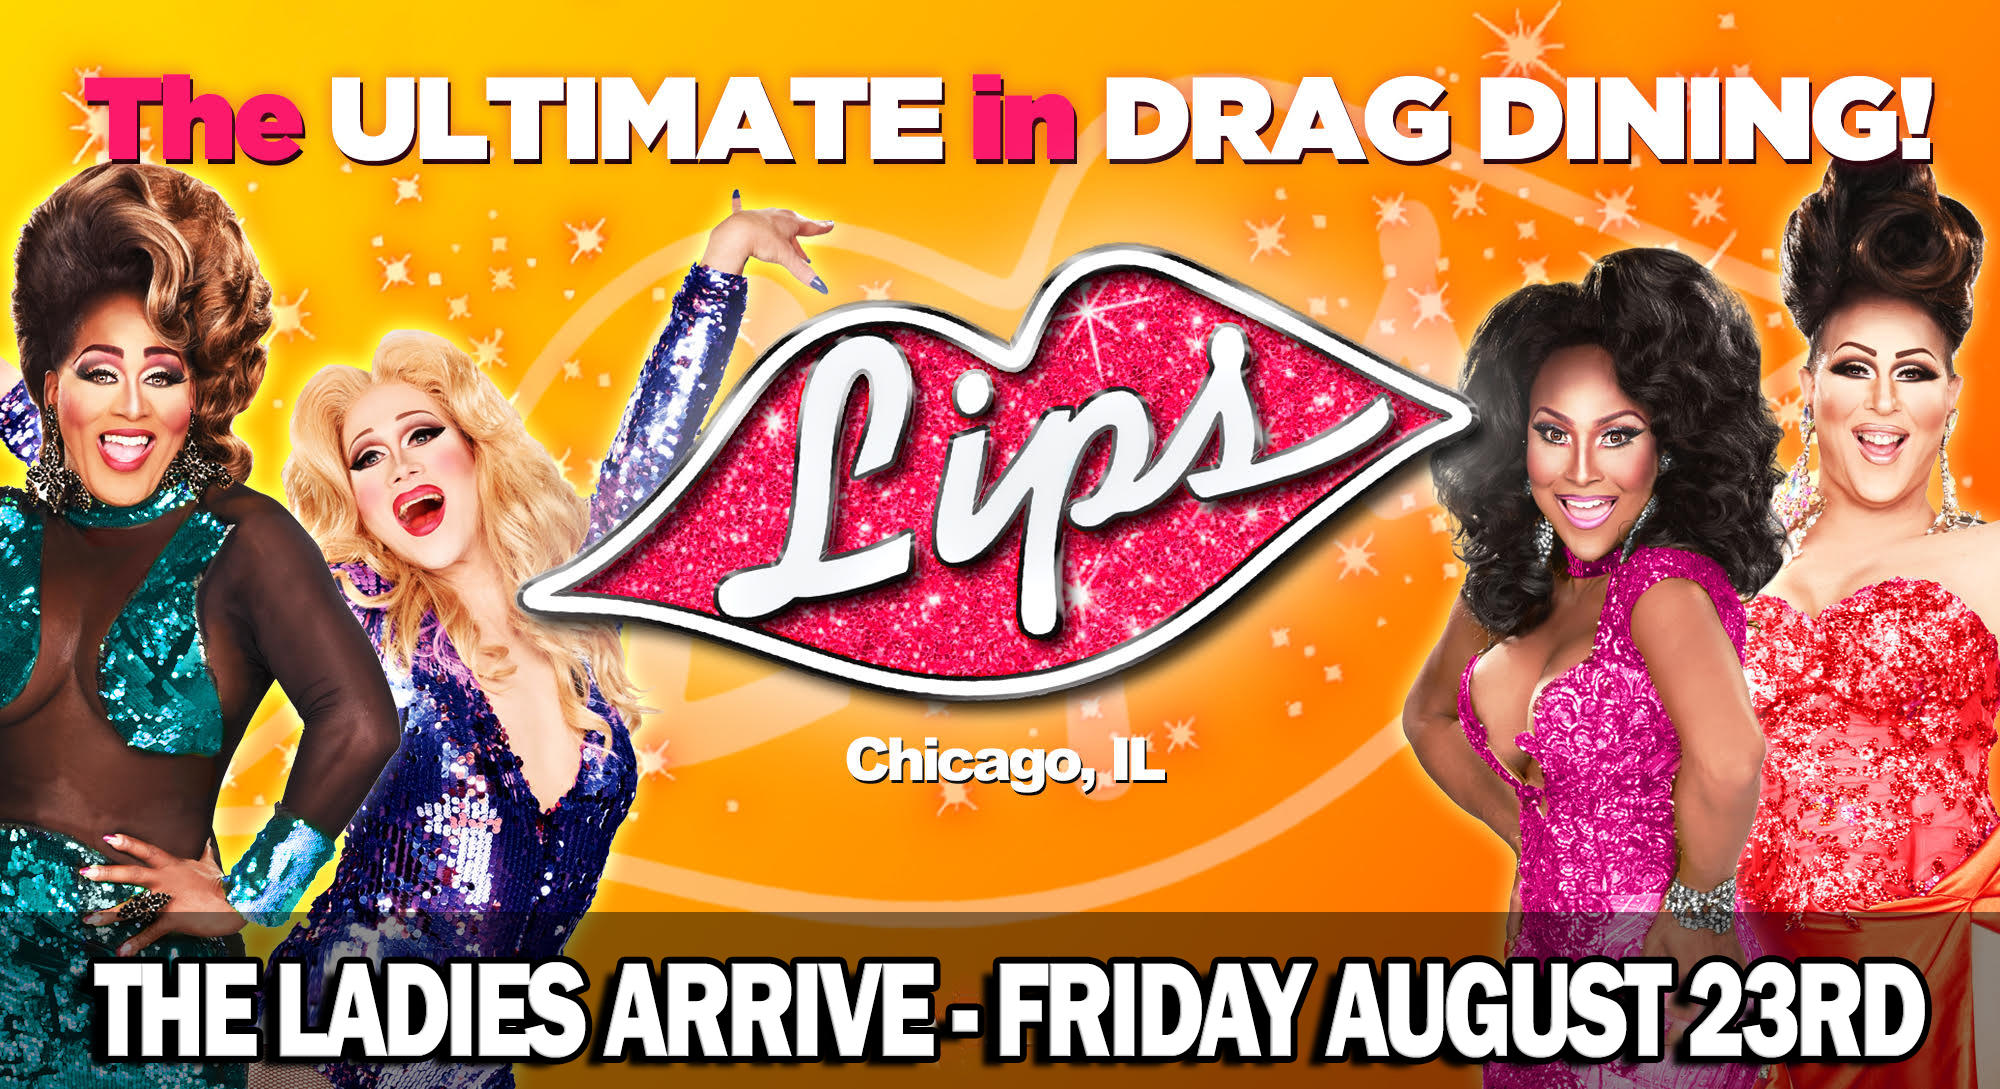 Lips Drag Queen Show Palace, Restaurant & Bar image 1